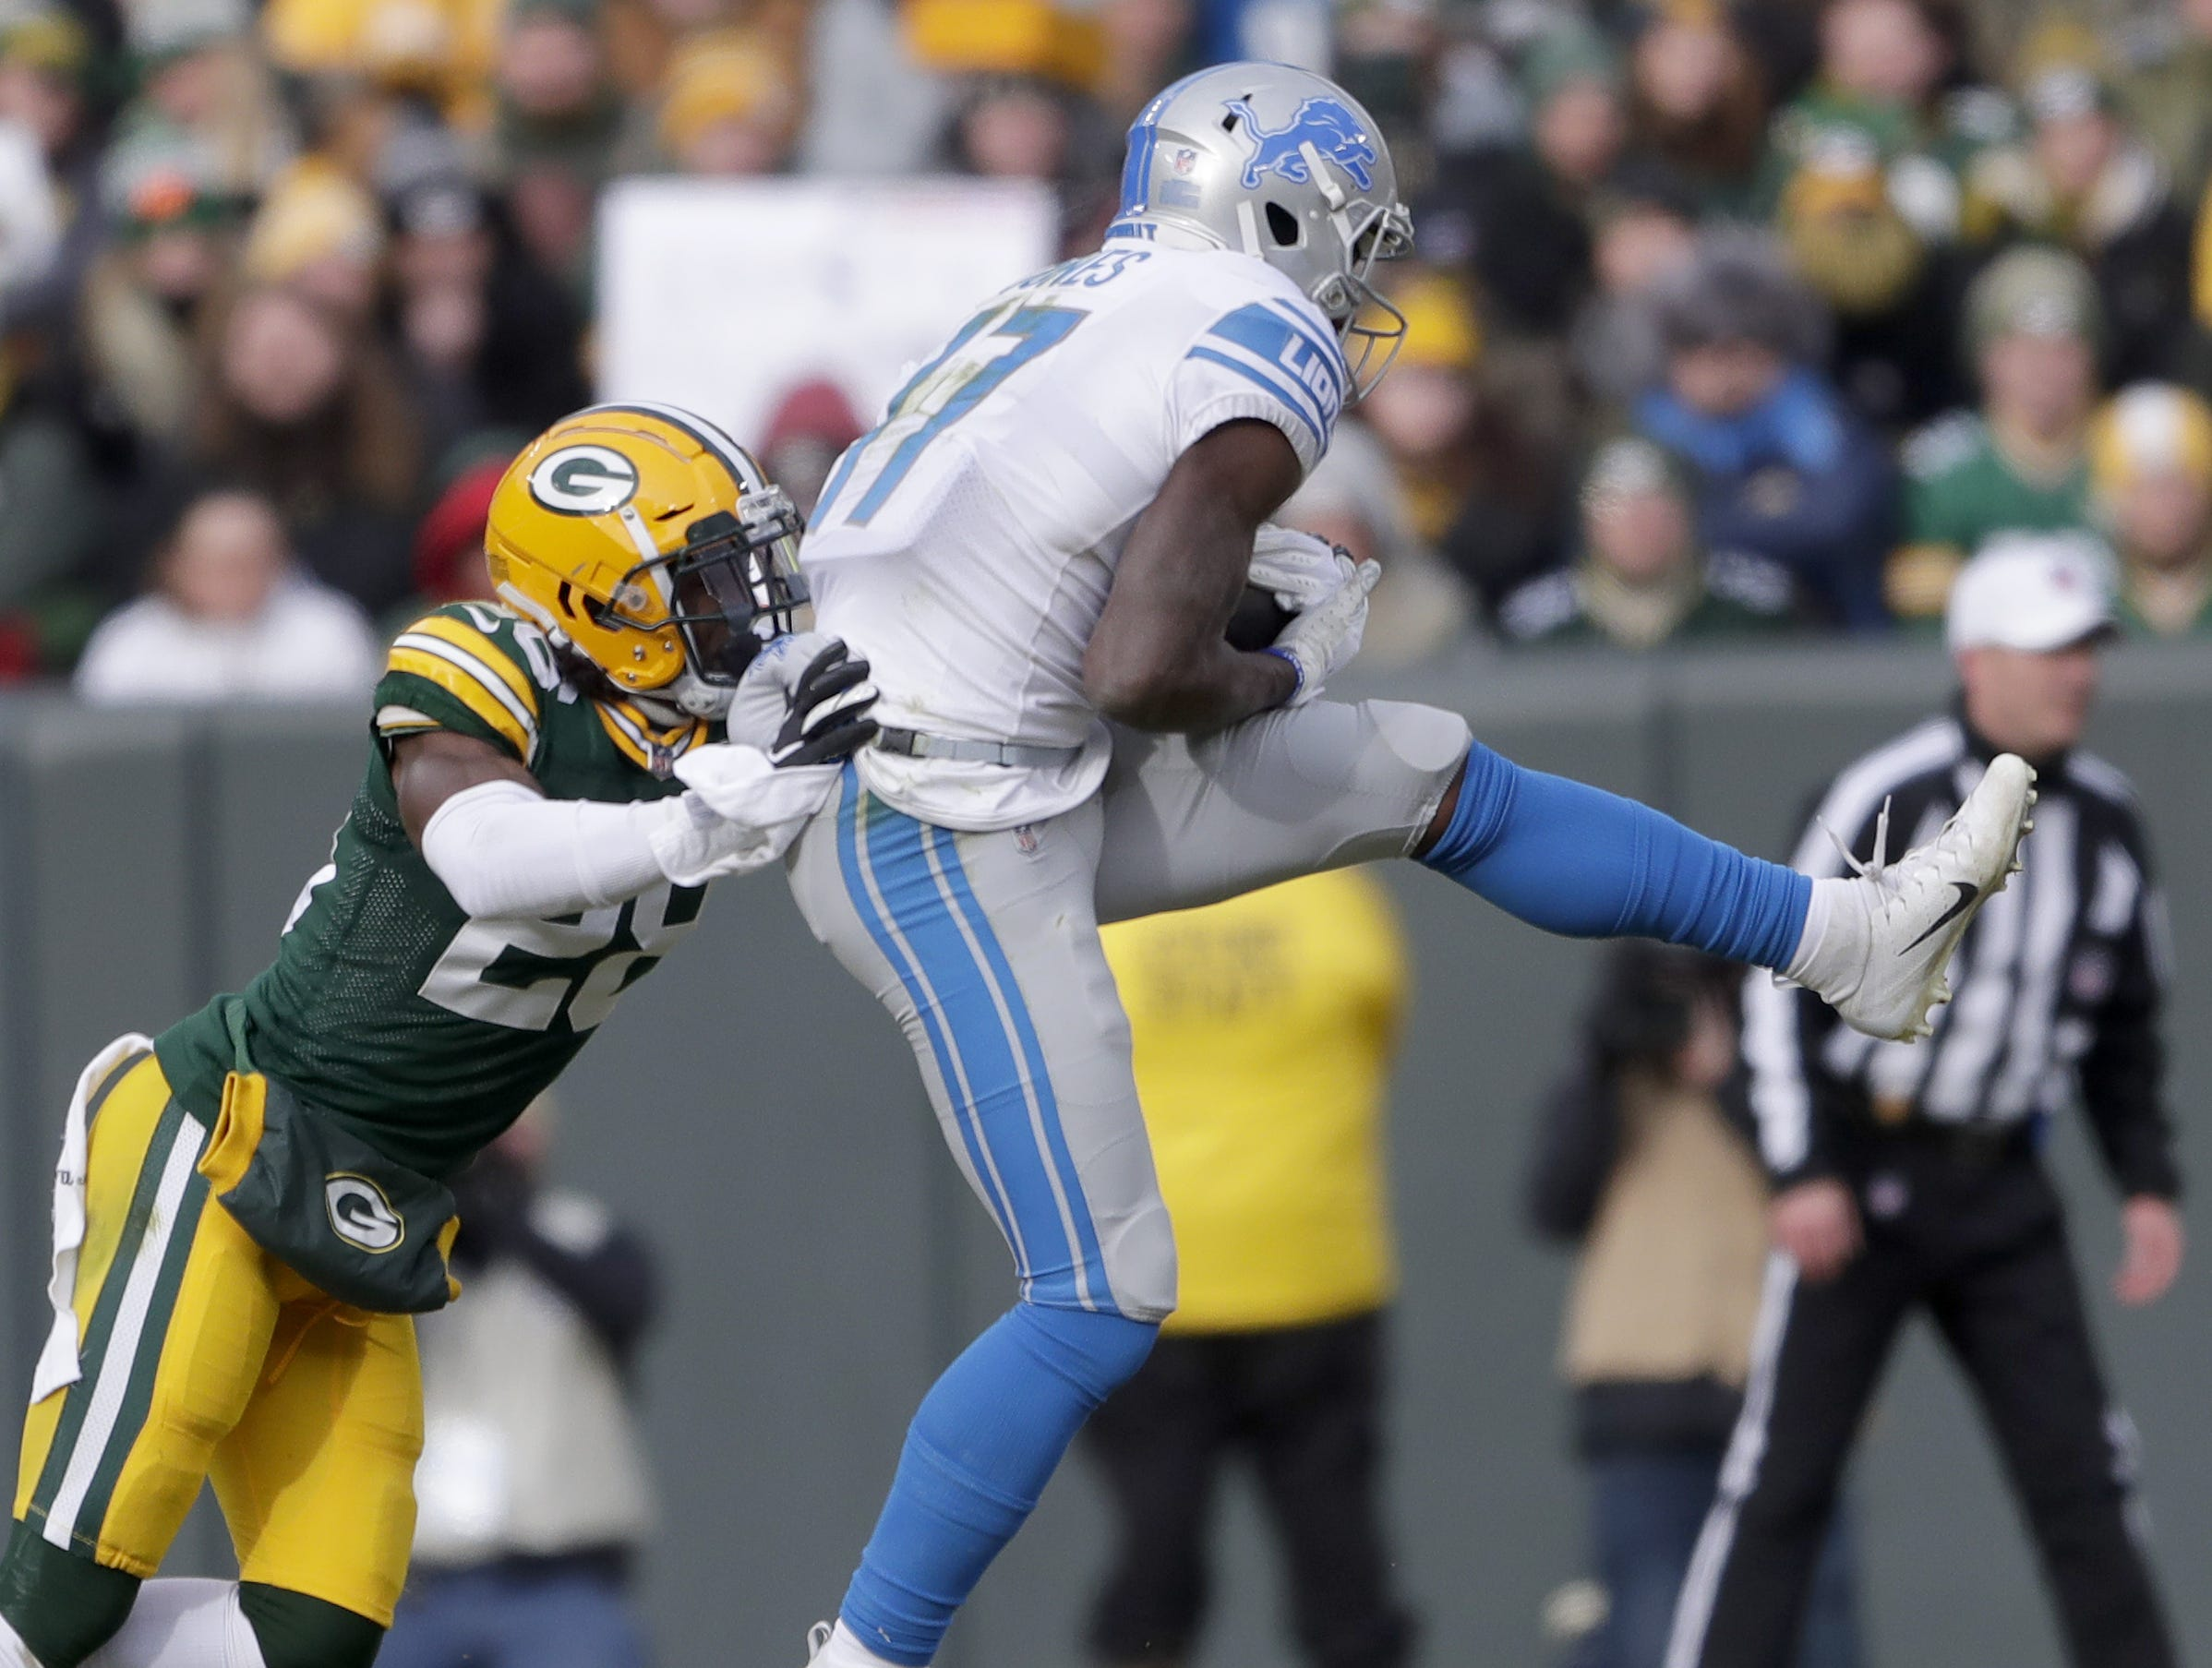 Detroit Lions wide receiver Andy Jones (17) makes a catch in front of Green Bay Packers strong safety Kentrell Brice (29) at Lambeau Field Sunday, December 30, 2018 in Green Bay, Wis.